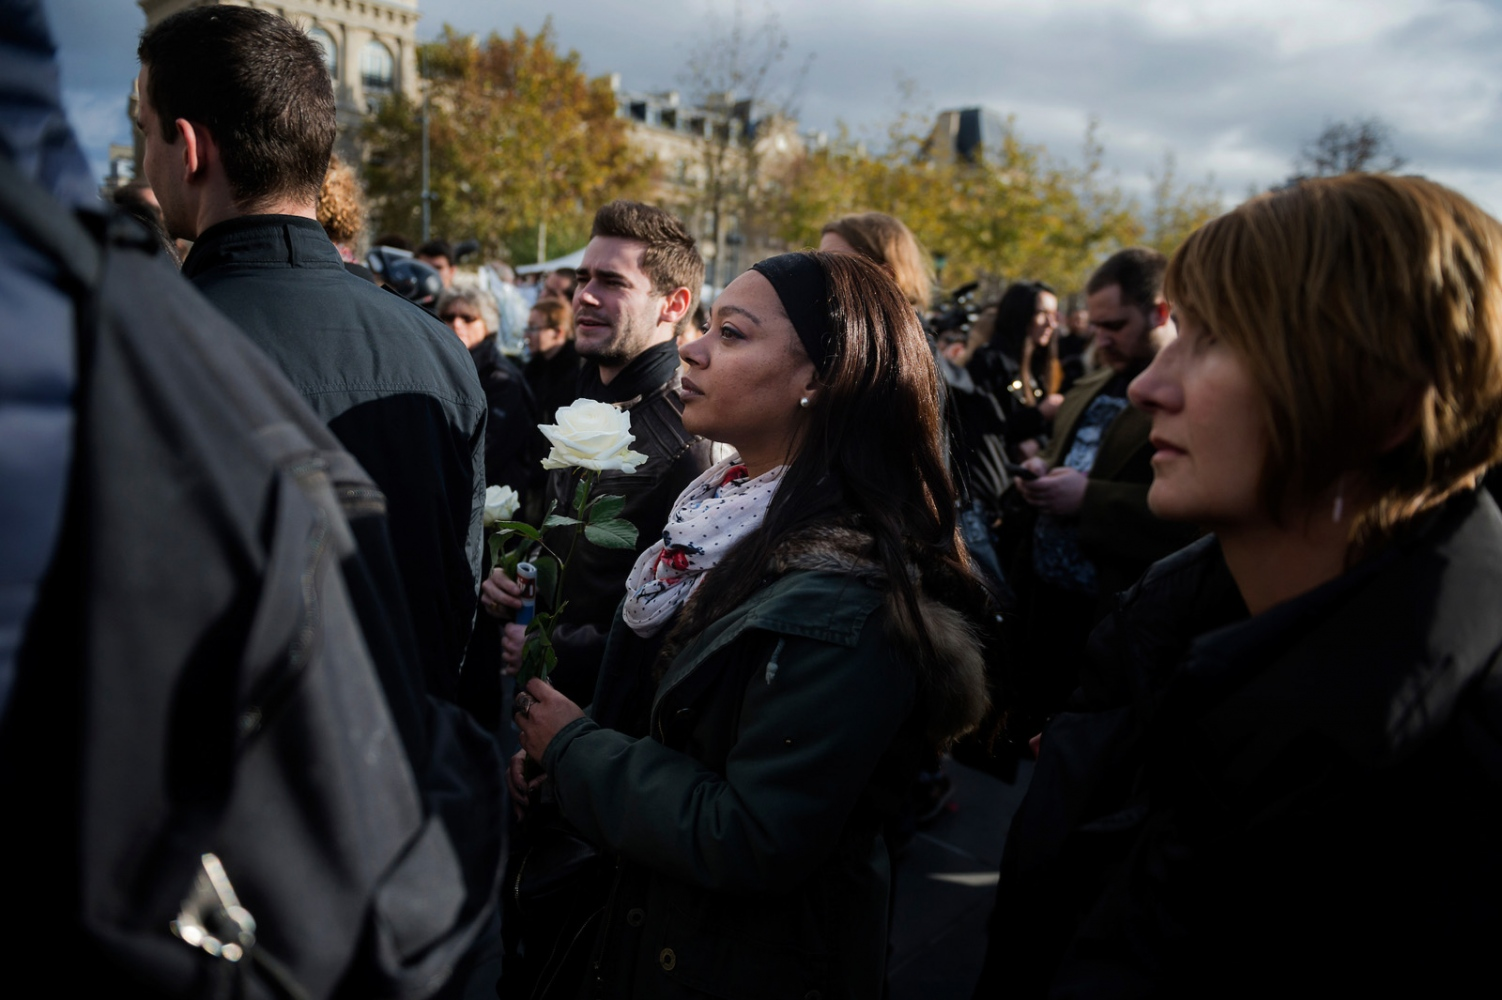 A woman holds a white rose during a silent minute at Place de La République two days after several coordinated terrorist attacks in Paris, France, left over a hundred people dead.